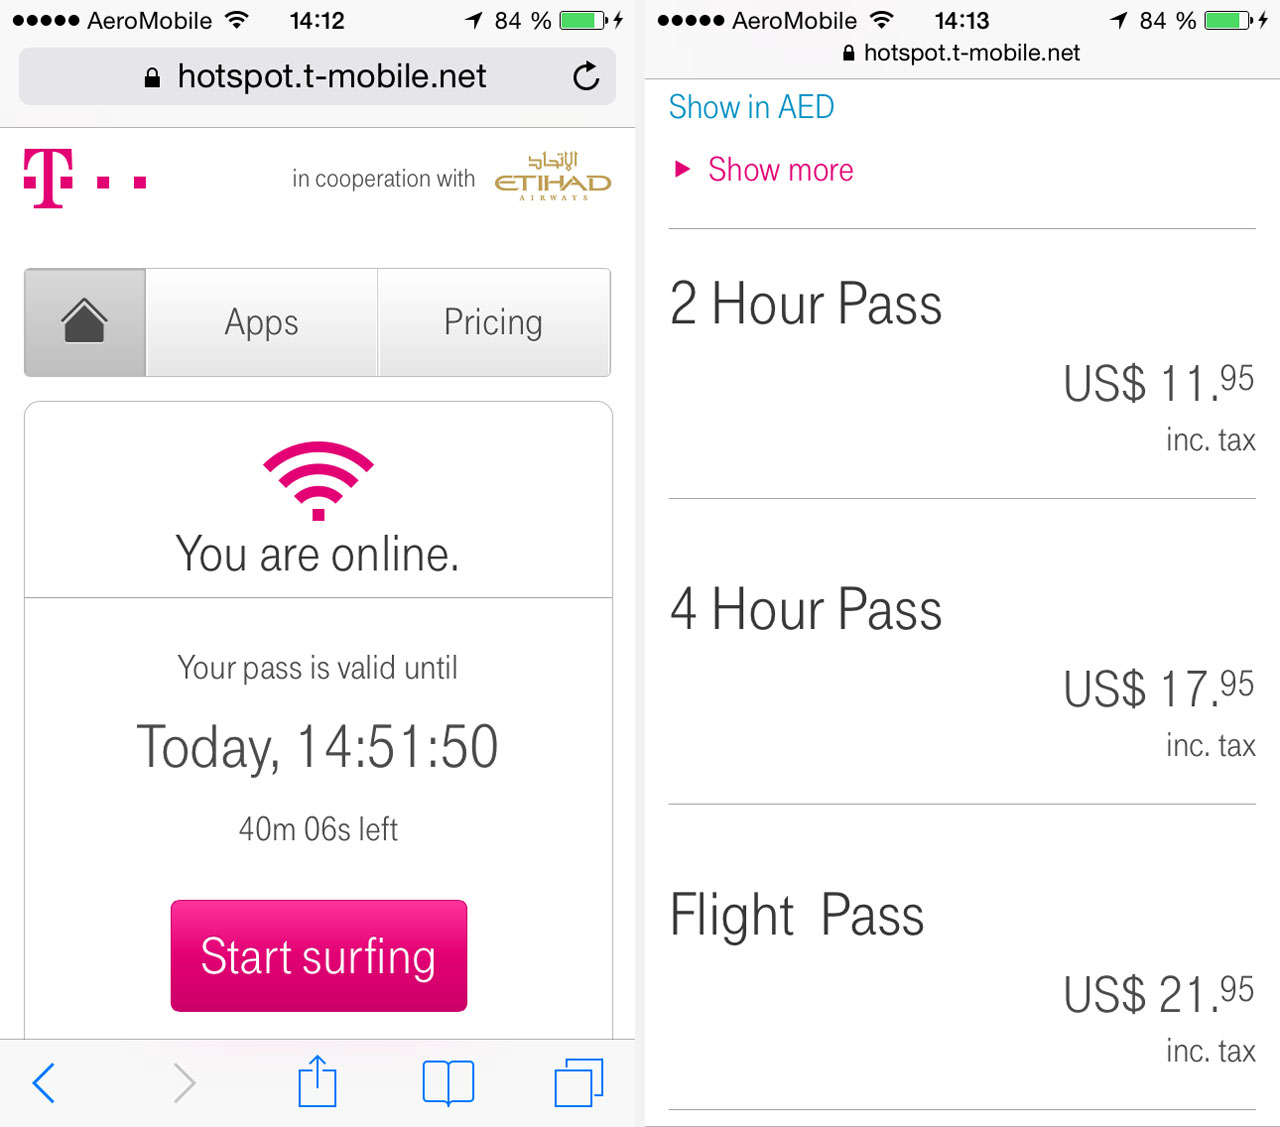 Screenshot T Mobile Hotspot In Cooperation With Etihad